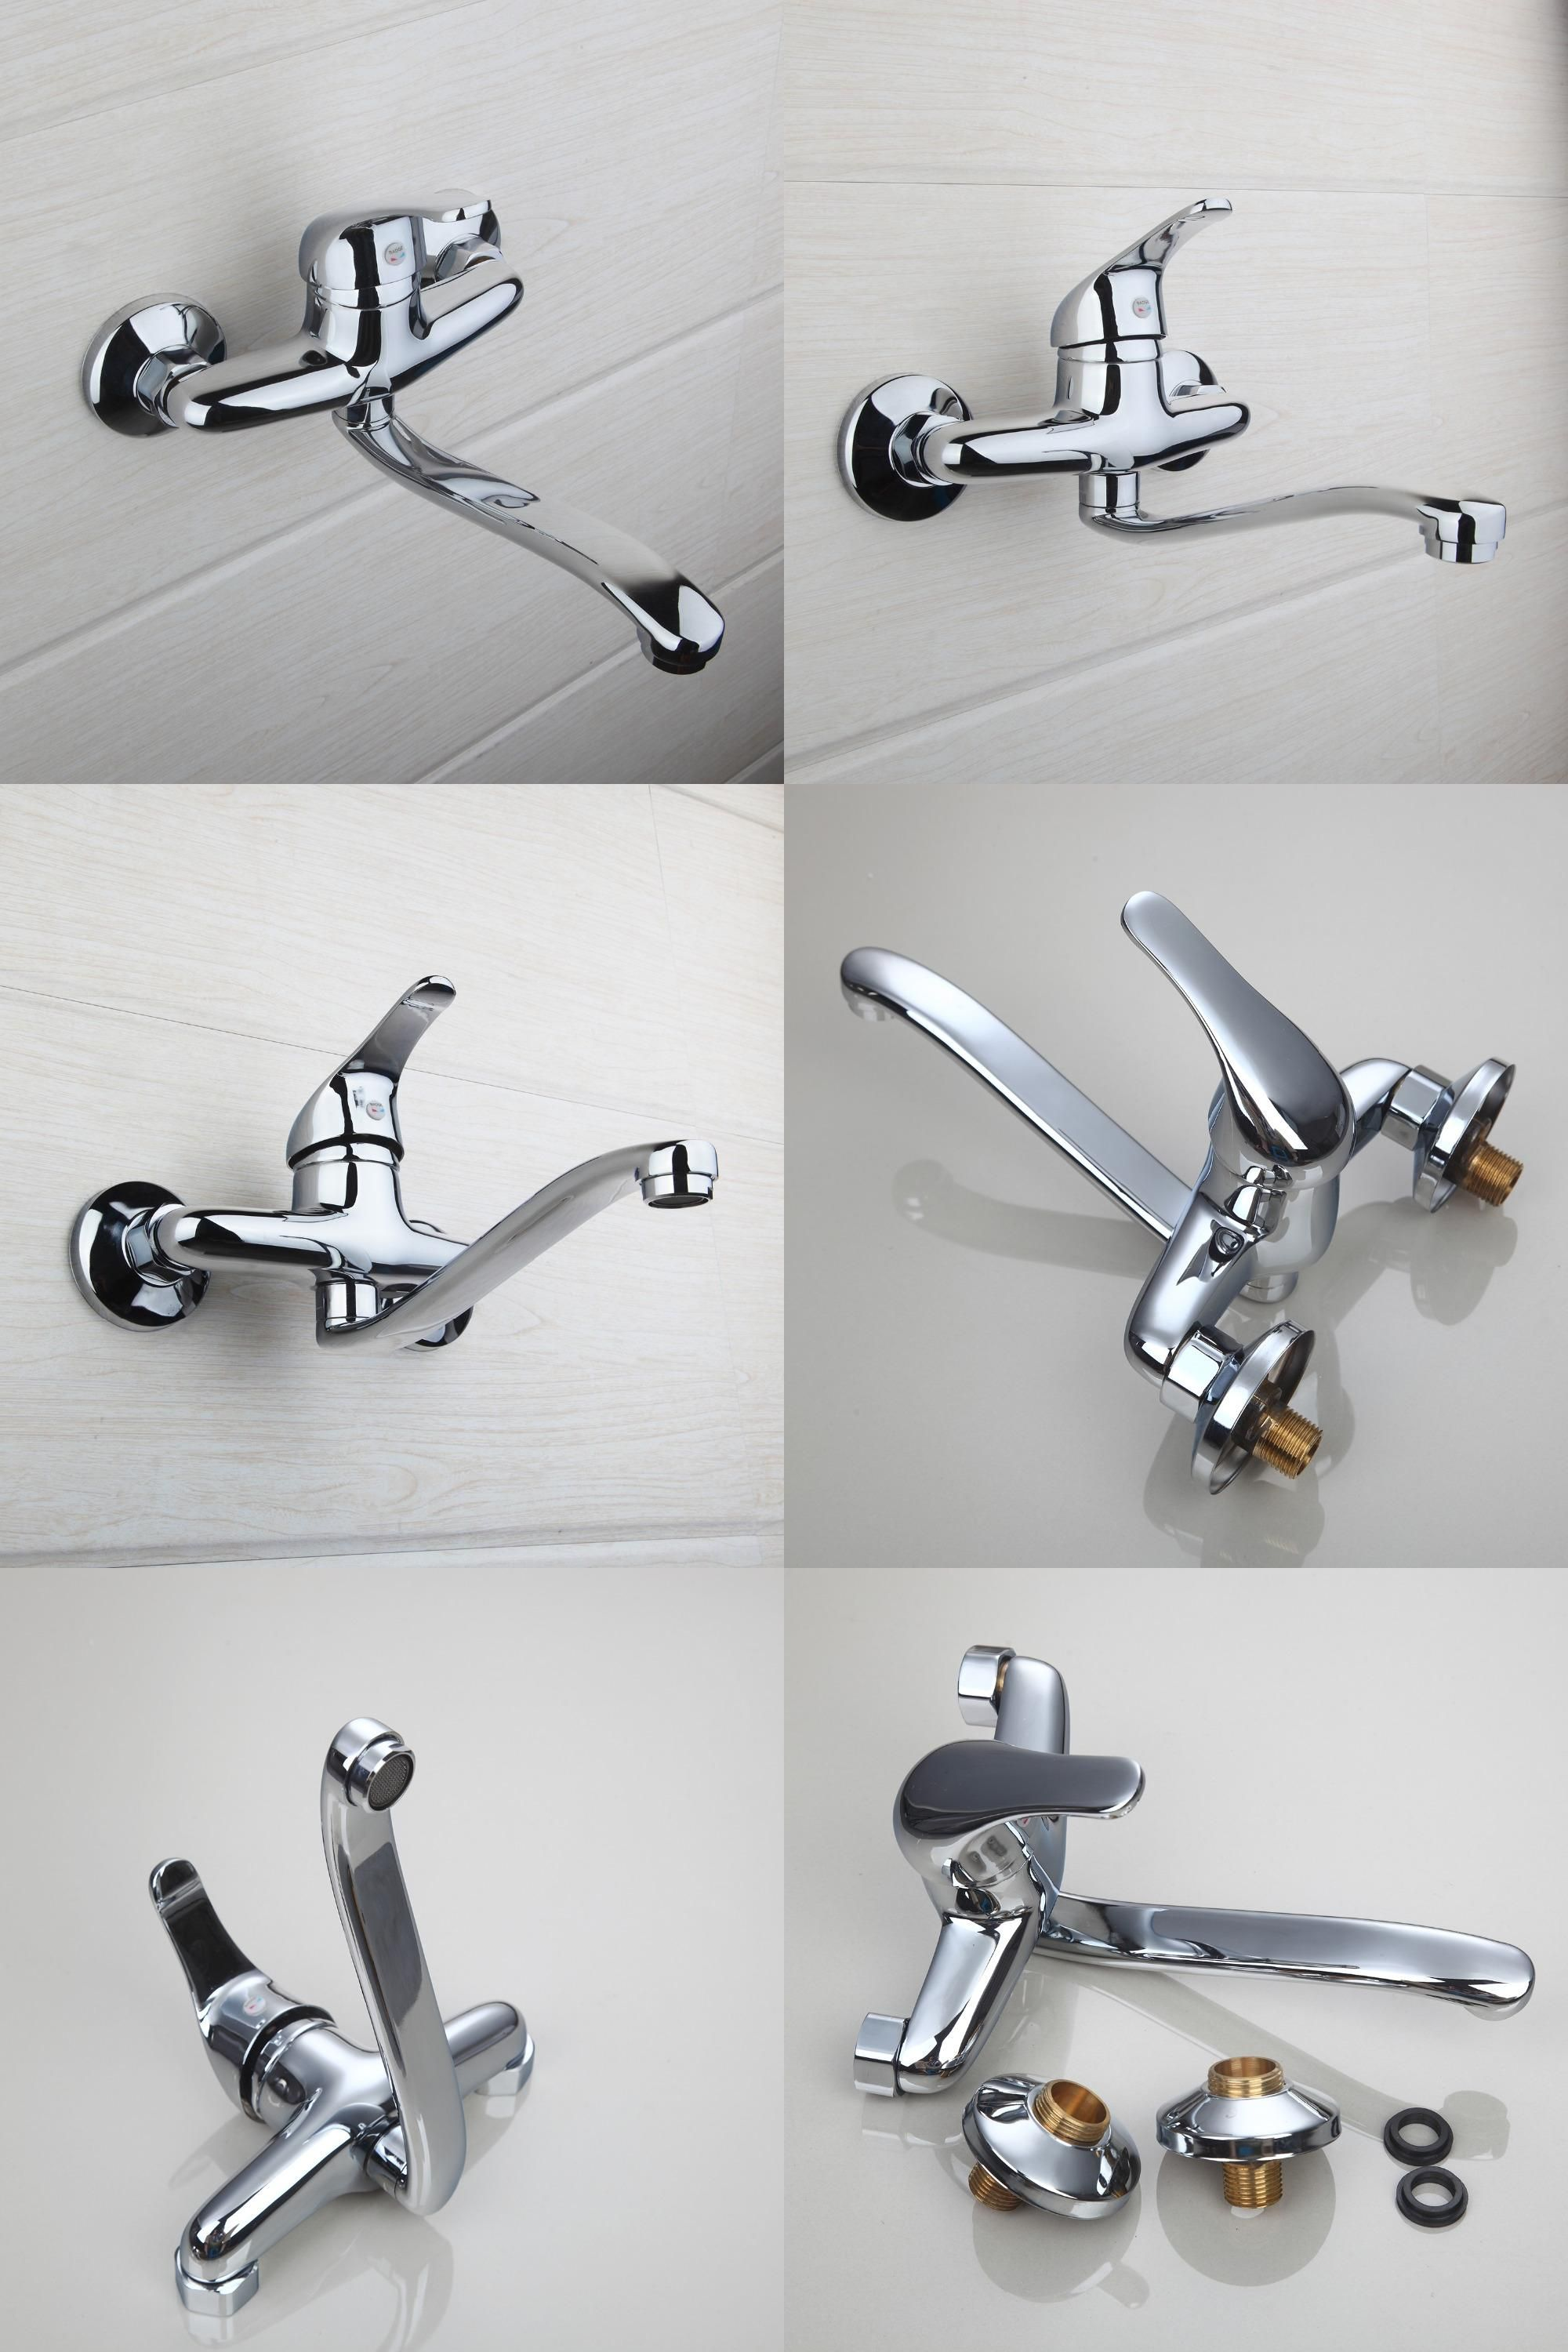 single reliant handle standard bathroom american sink chrome hole up pop faucets faucet centerset control inch